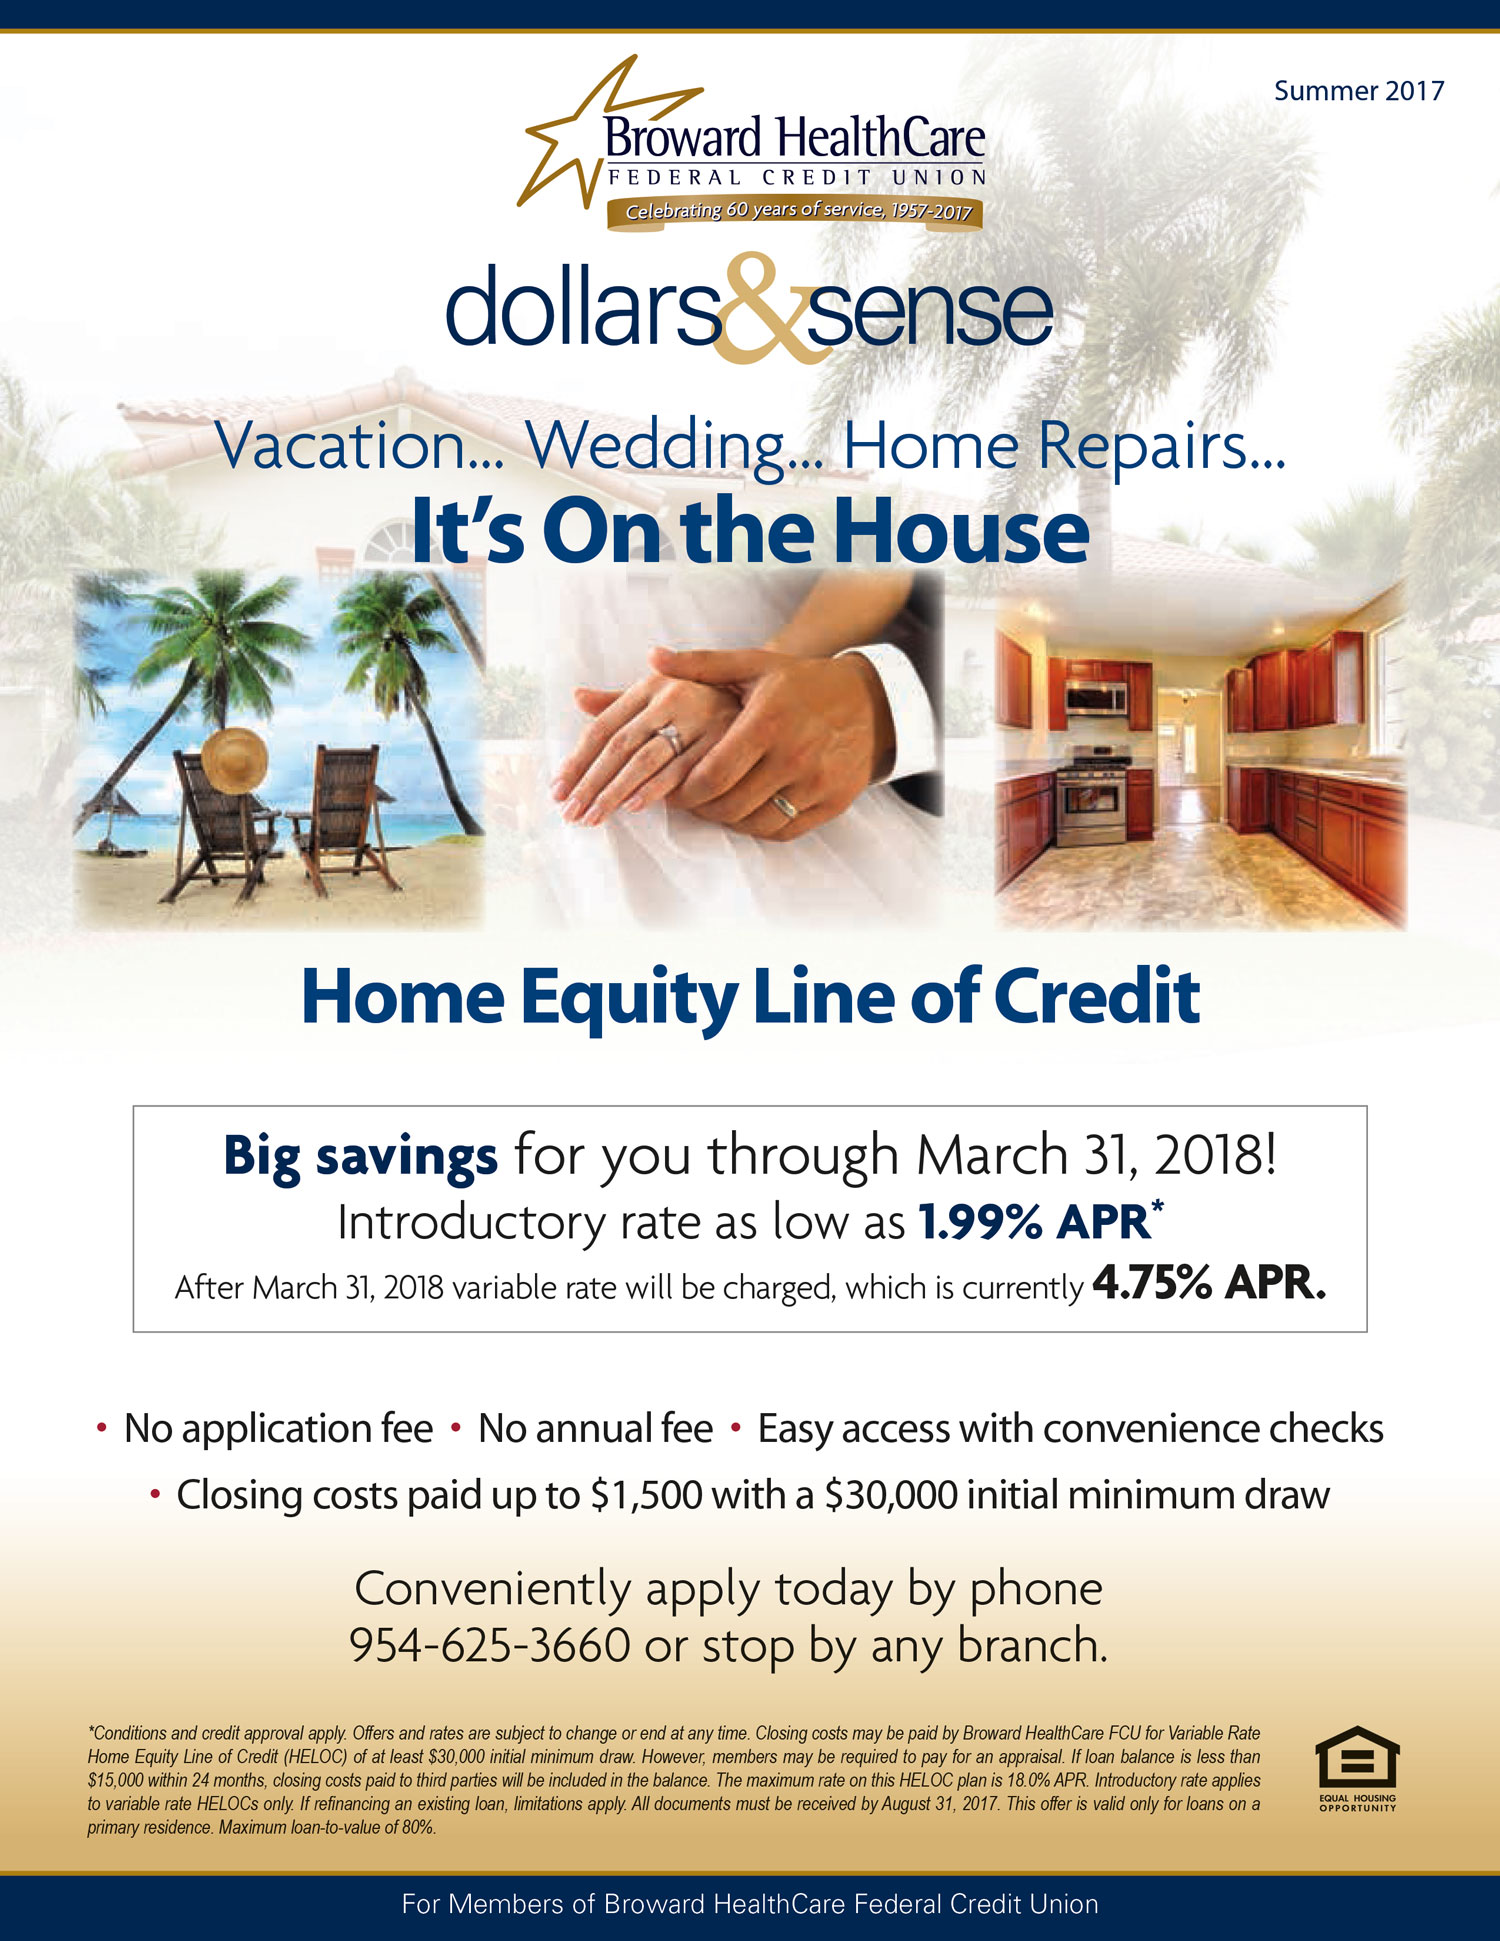 Broward HeathCare FCU Newsletter